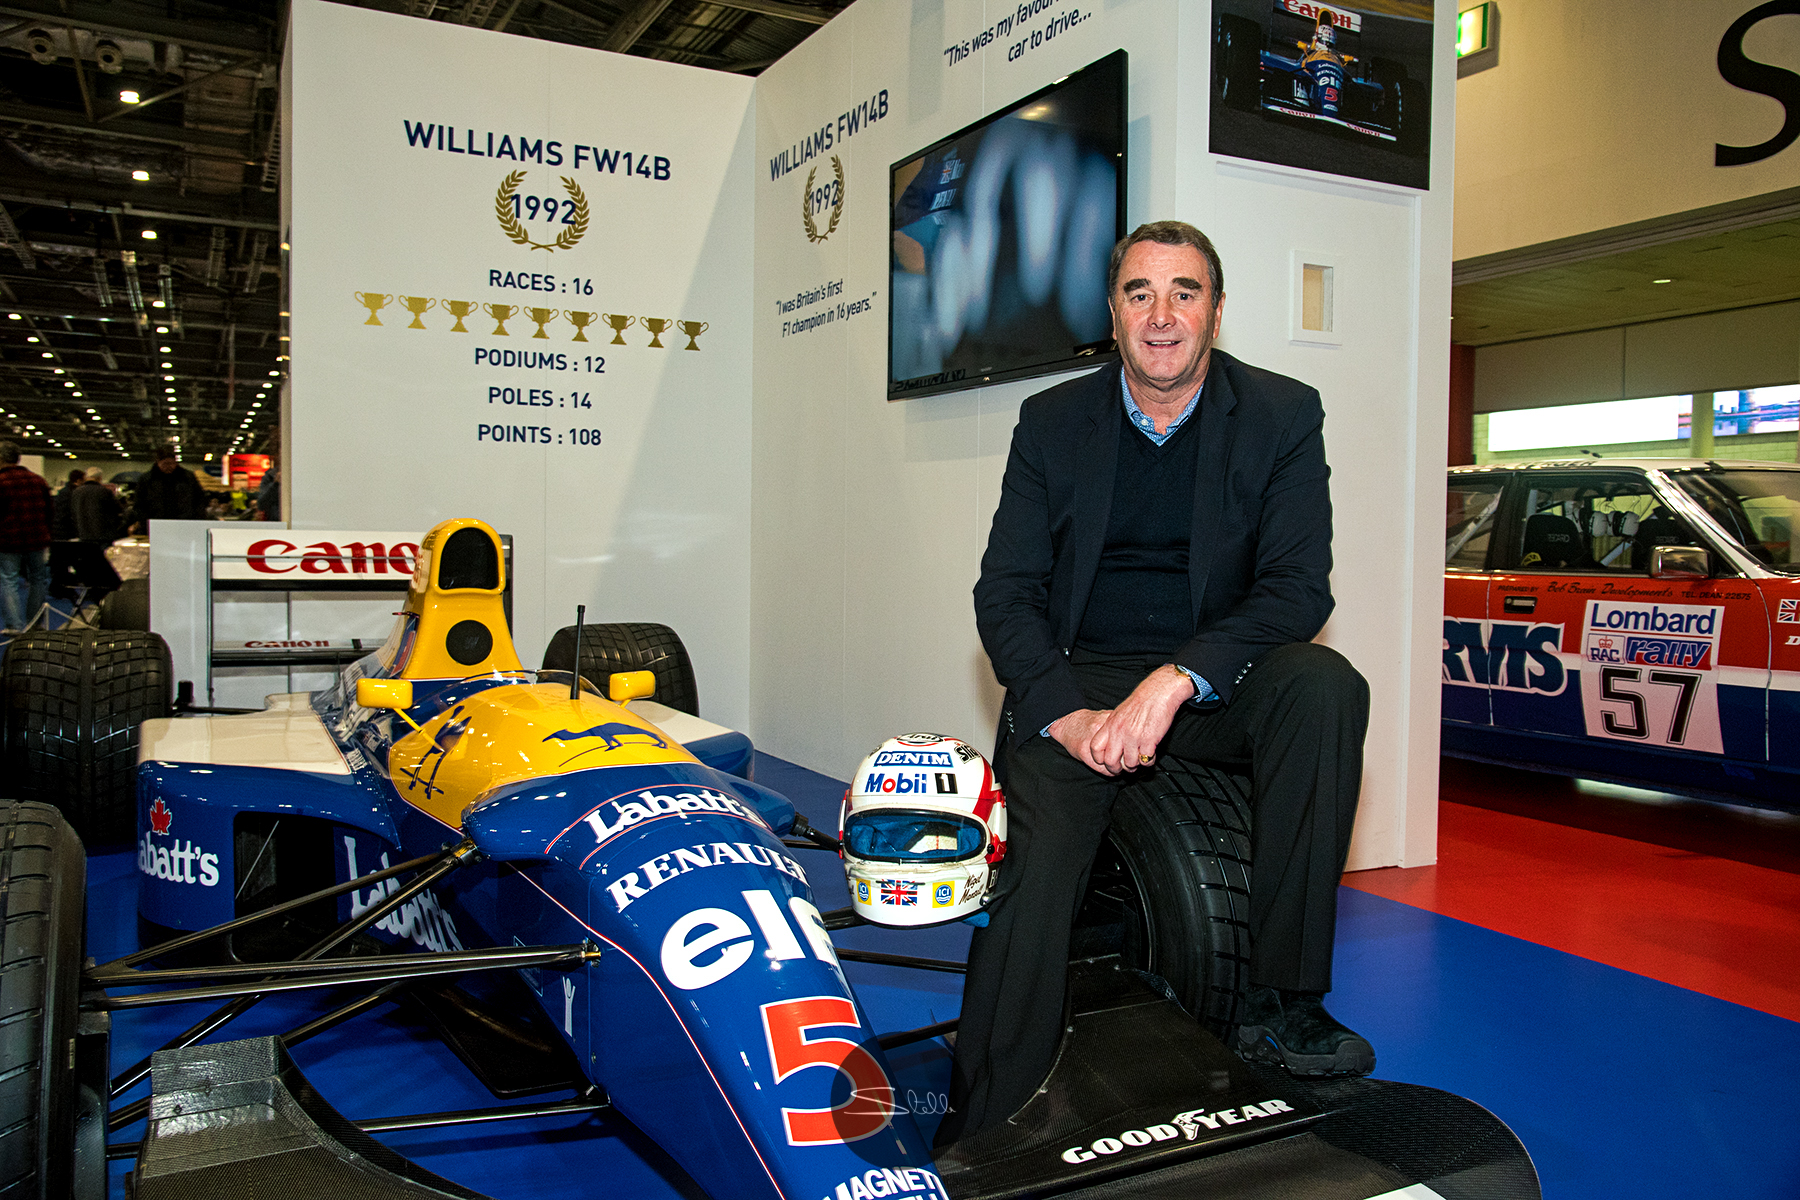 World Champion racing driver Nigel Mansell at the London Classic Car Show in February 2018 where he was presented with the Icon Award for services to motor racing.